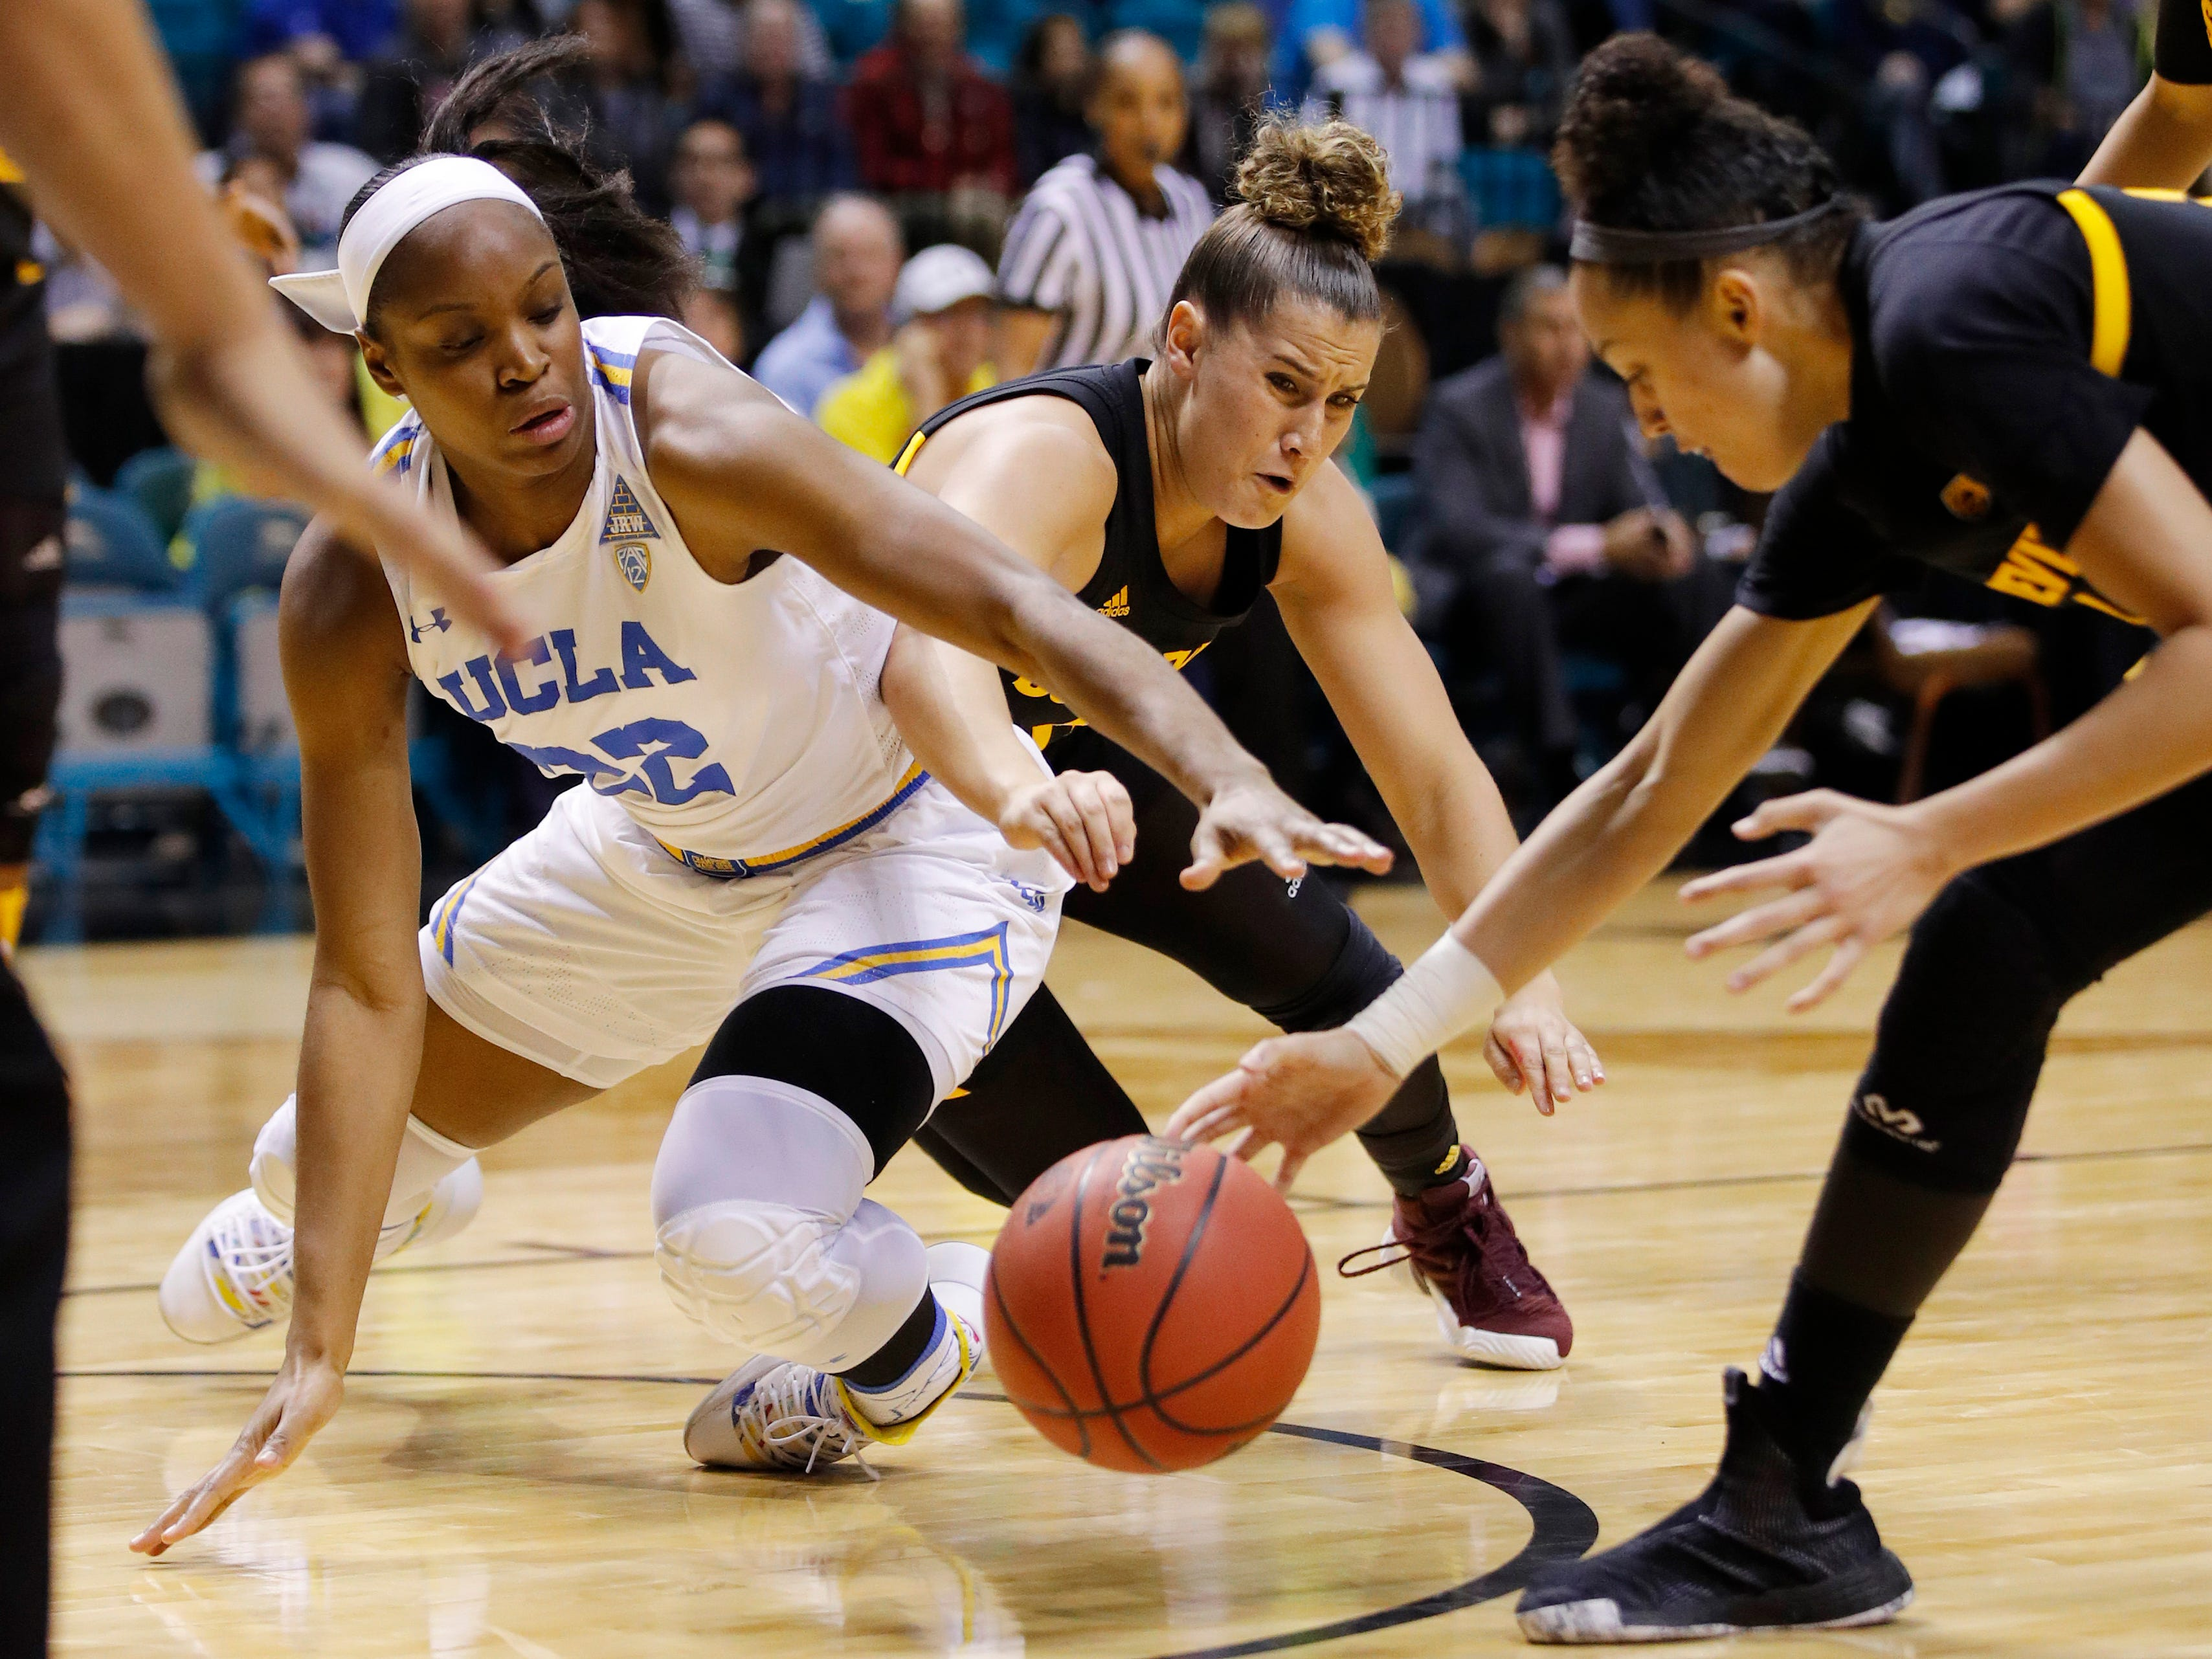 From left, UCLA's Kennedy Burke, Arizona State's Taya Hanson and Reili Richardson scramble for the ball during the second half of an NCAA college basketball game at the Pac-12 women's tournament Friday, March 8, 2019, in Las Vegas.